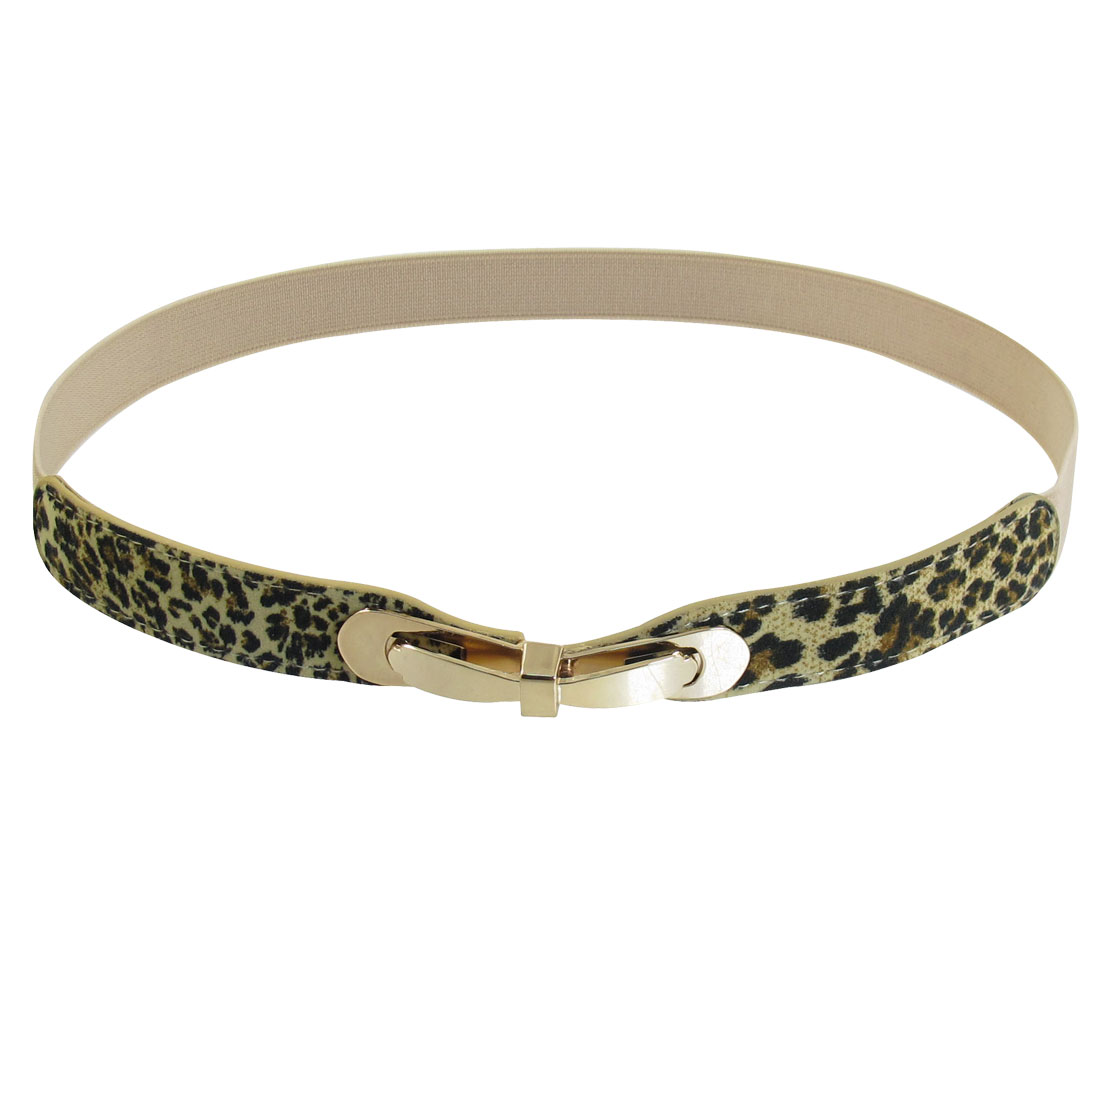 Gray Metal Interlocking Buckle Leopard Elastic Slim Cinch Waist Belt